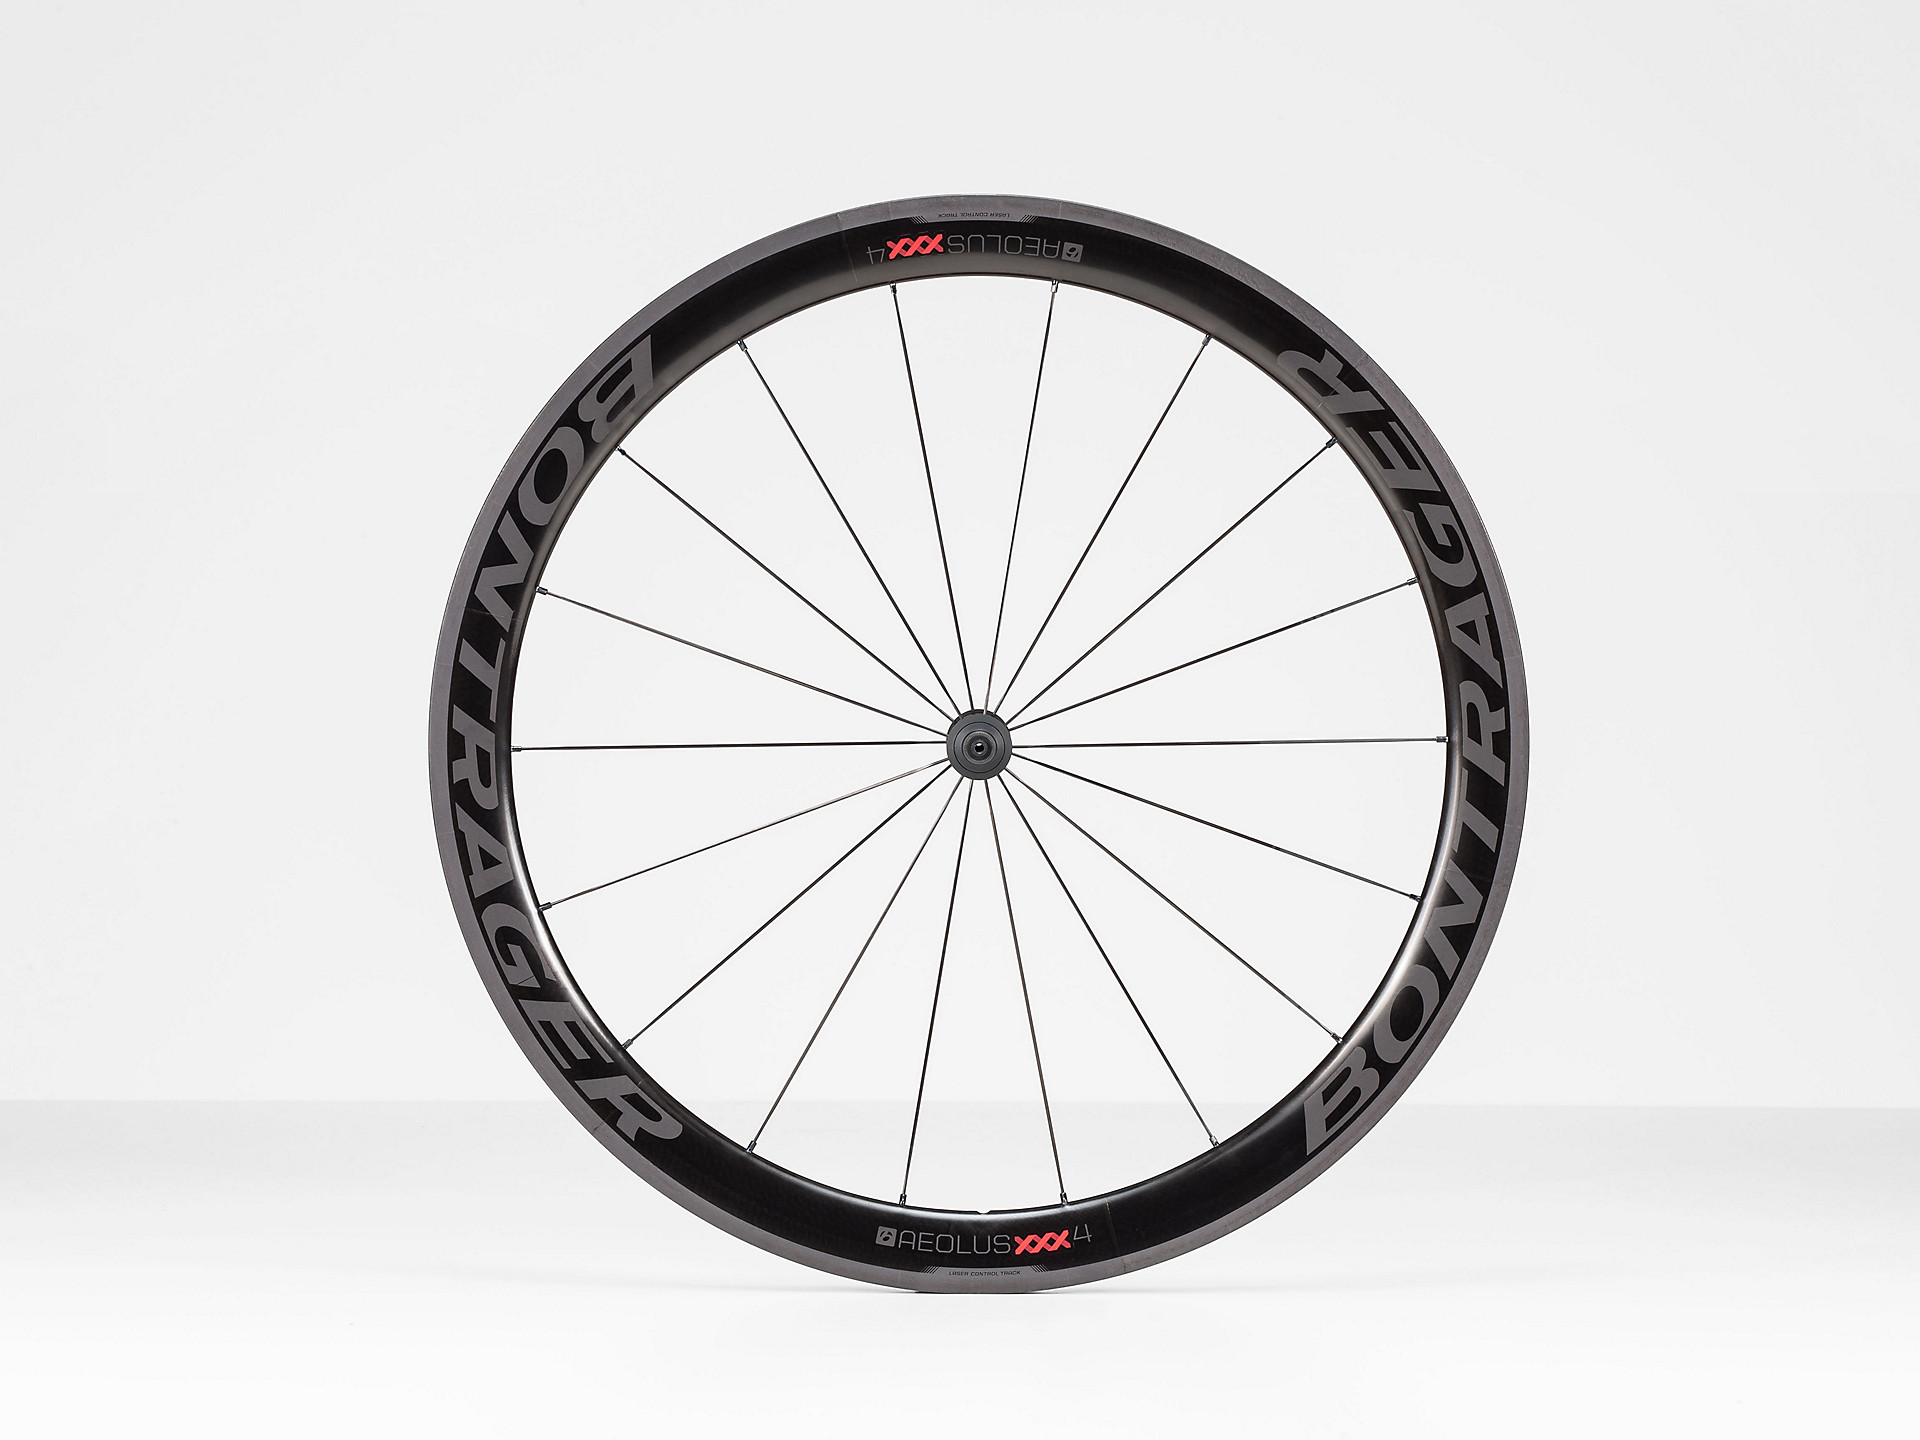 Bontrager Aeolus XXX 4 TLR Clincher Road Wheel | Trek Bikes